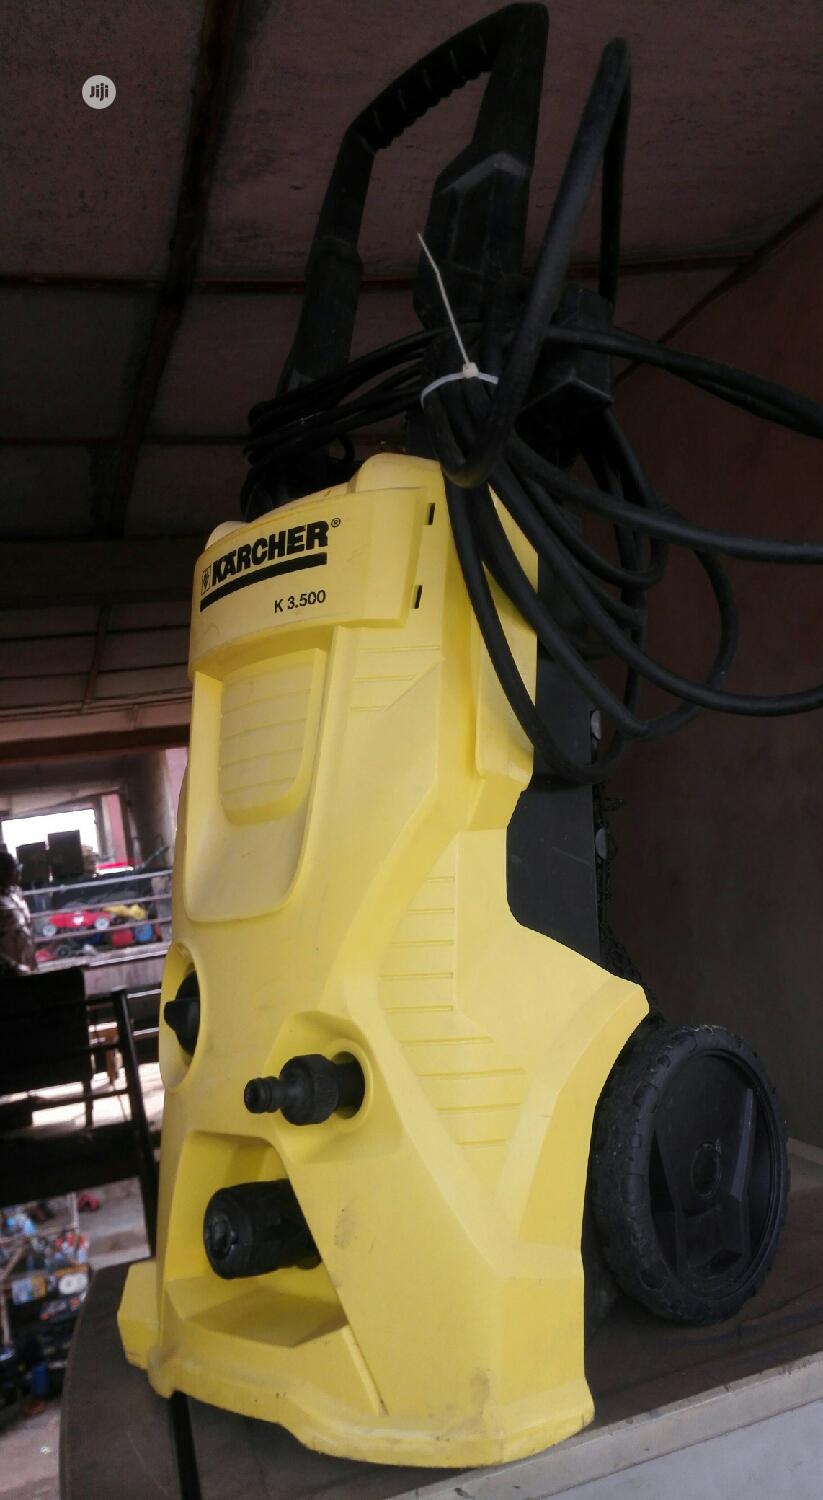 Karcher K3.5 High Pressure Washer. Car Wash Machine!